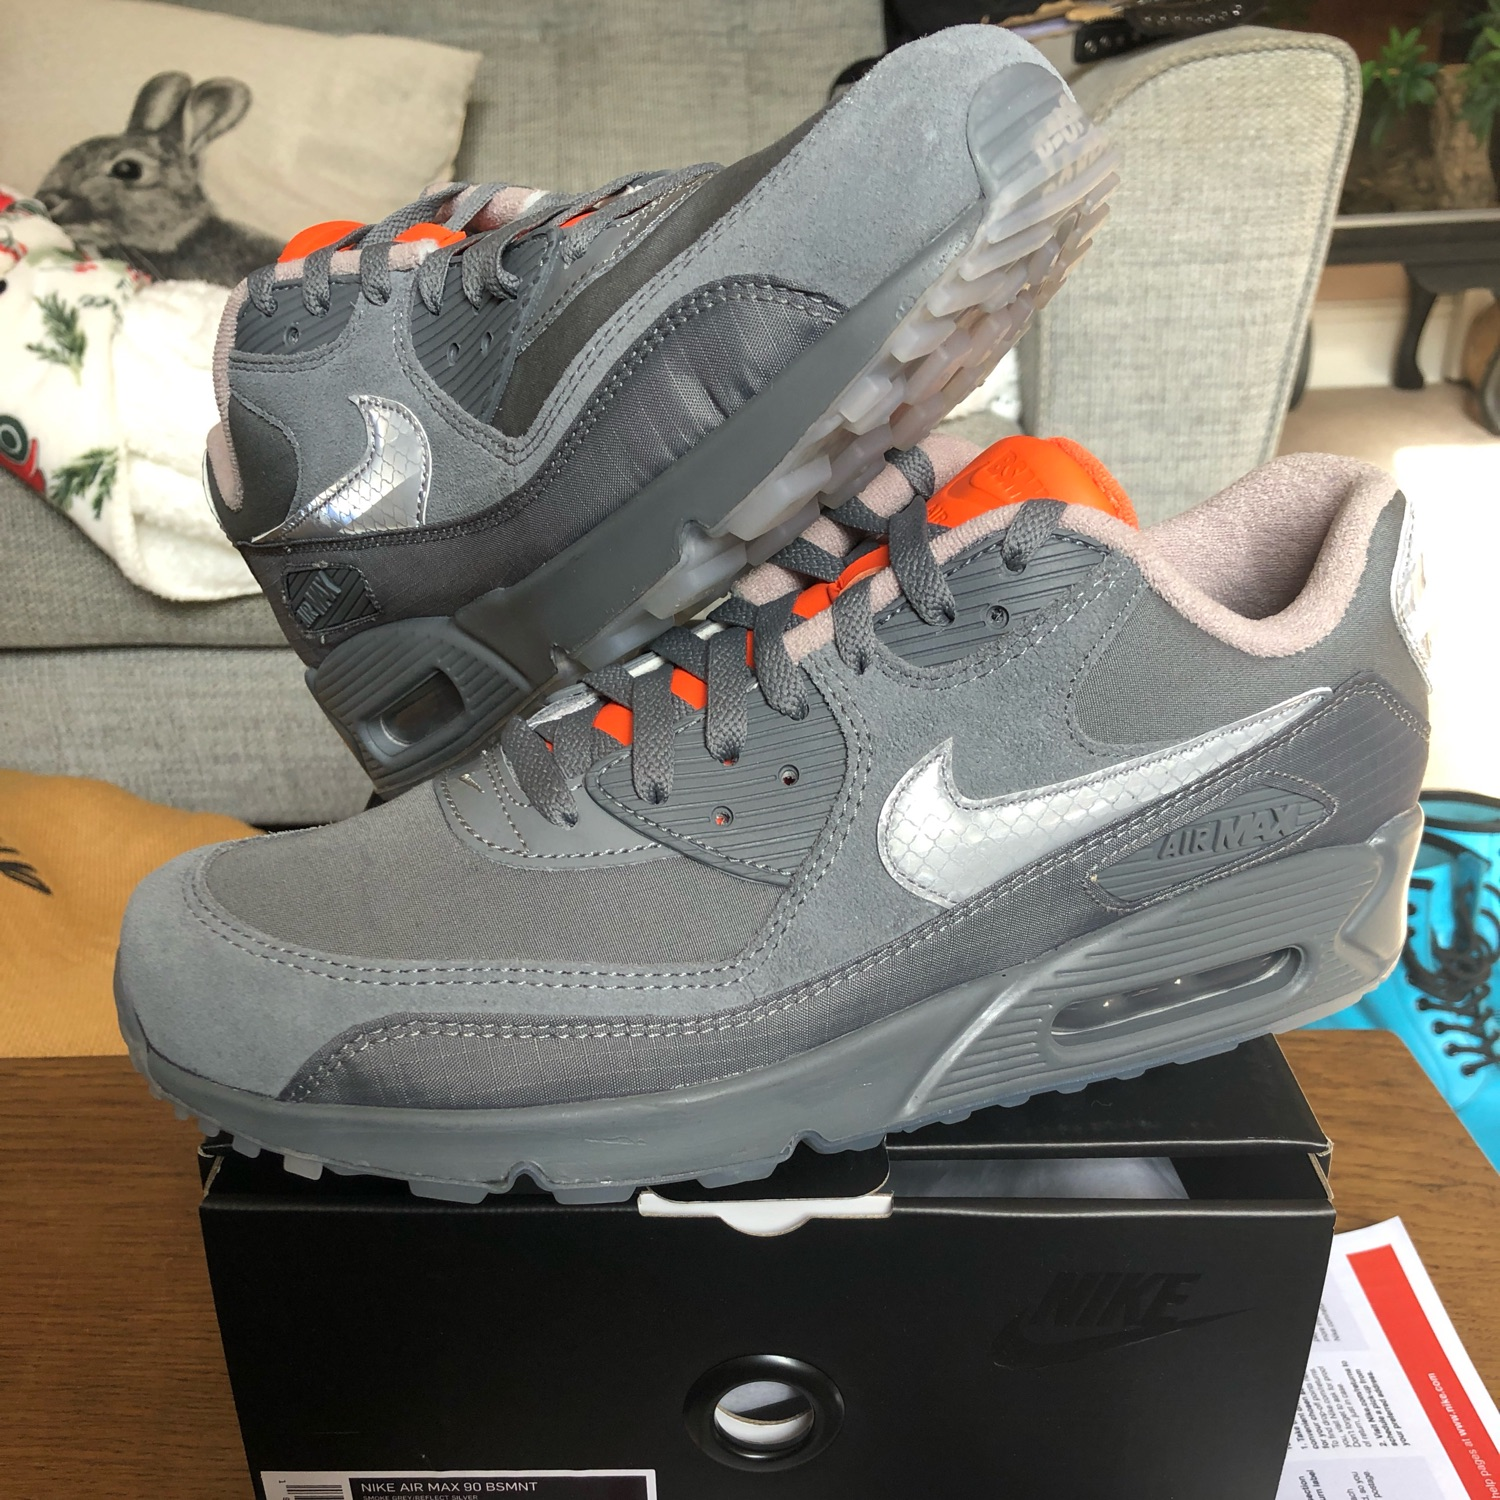 Nike X Basement Glasgow Air Max 90 Dswt In Hand